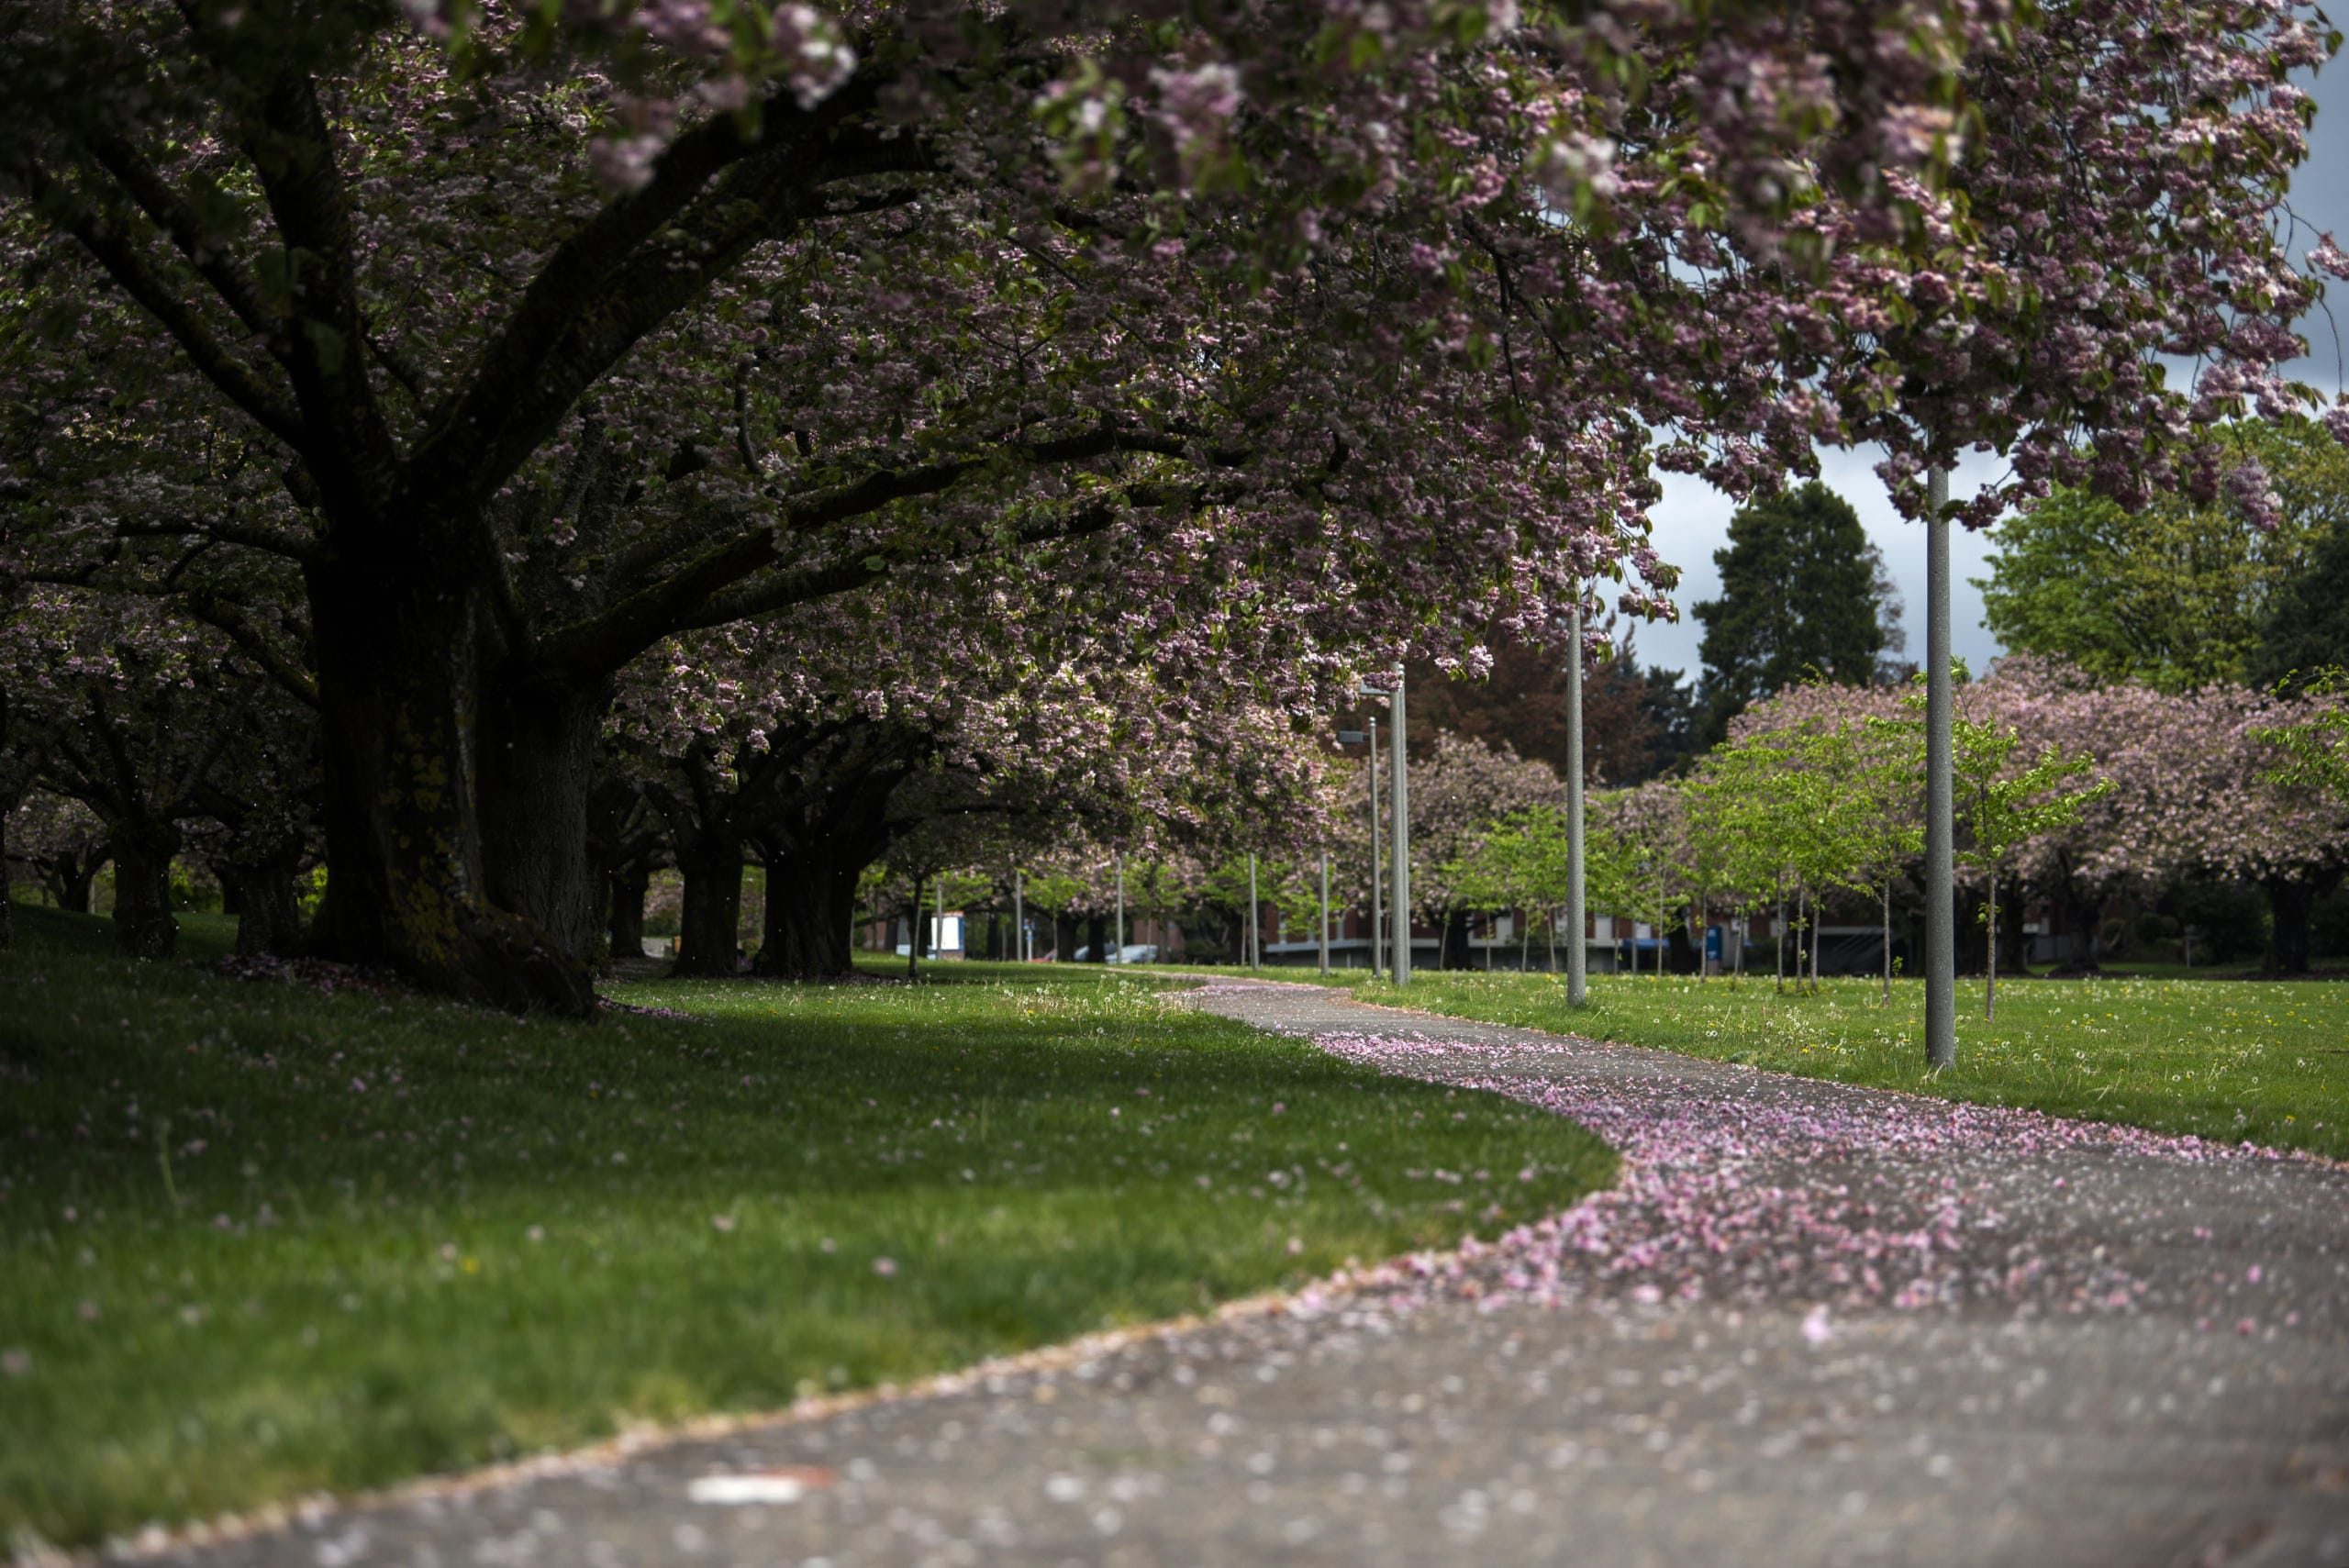 The sidewalks are covered in fallen blossoms from the Shirofugen cherry trees at Clark College in Vancouver on April 22, 2020.